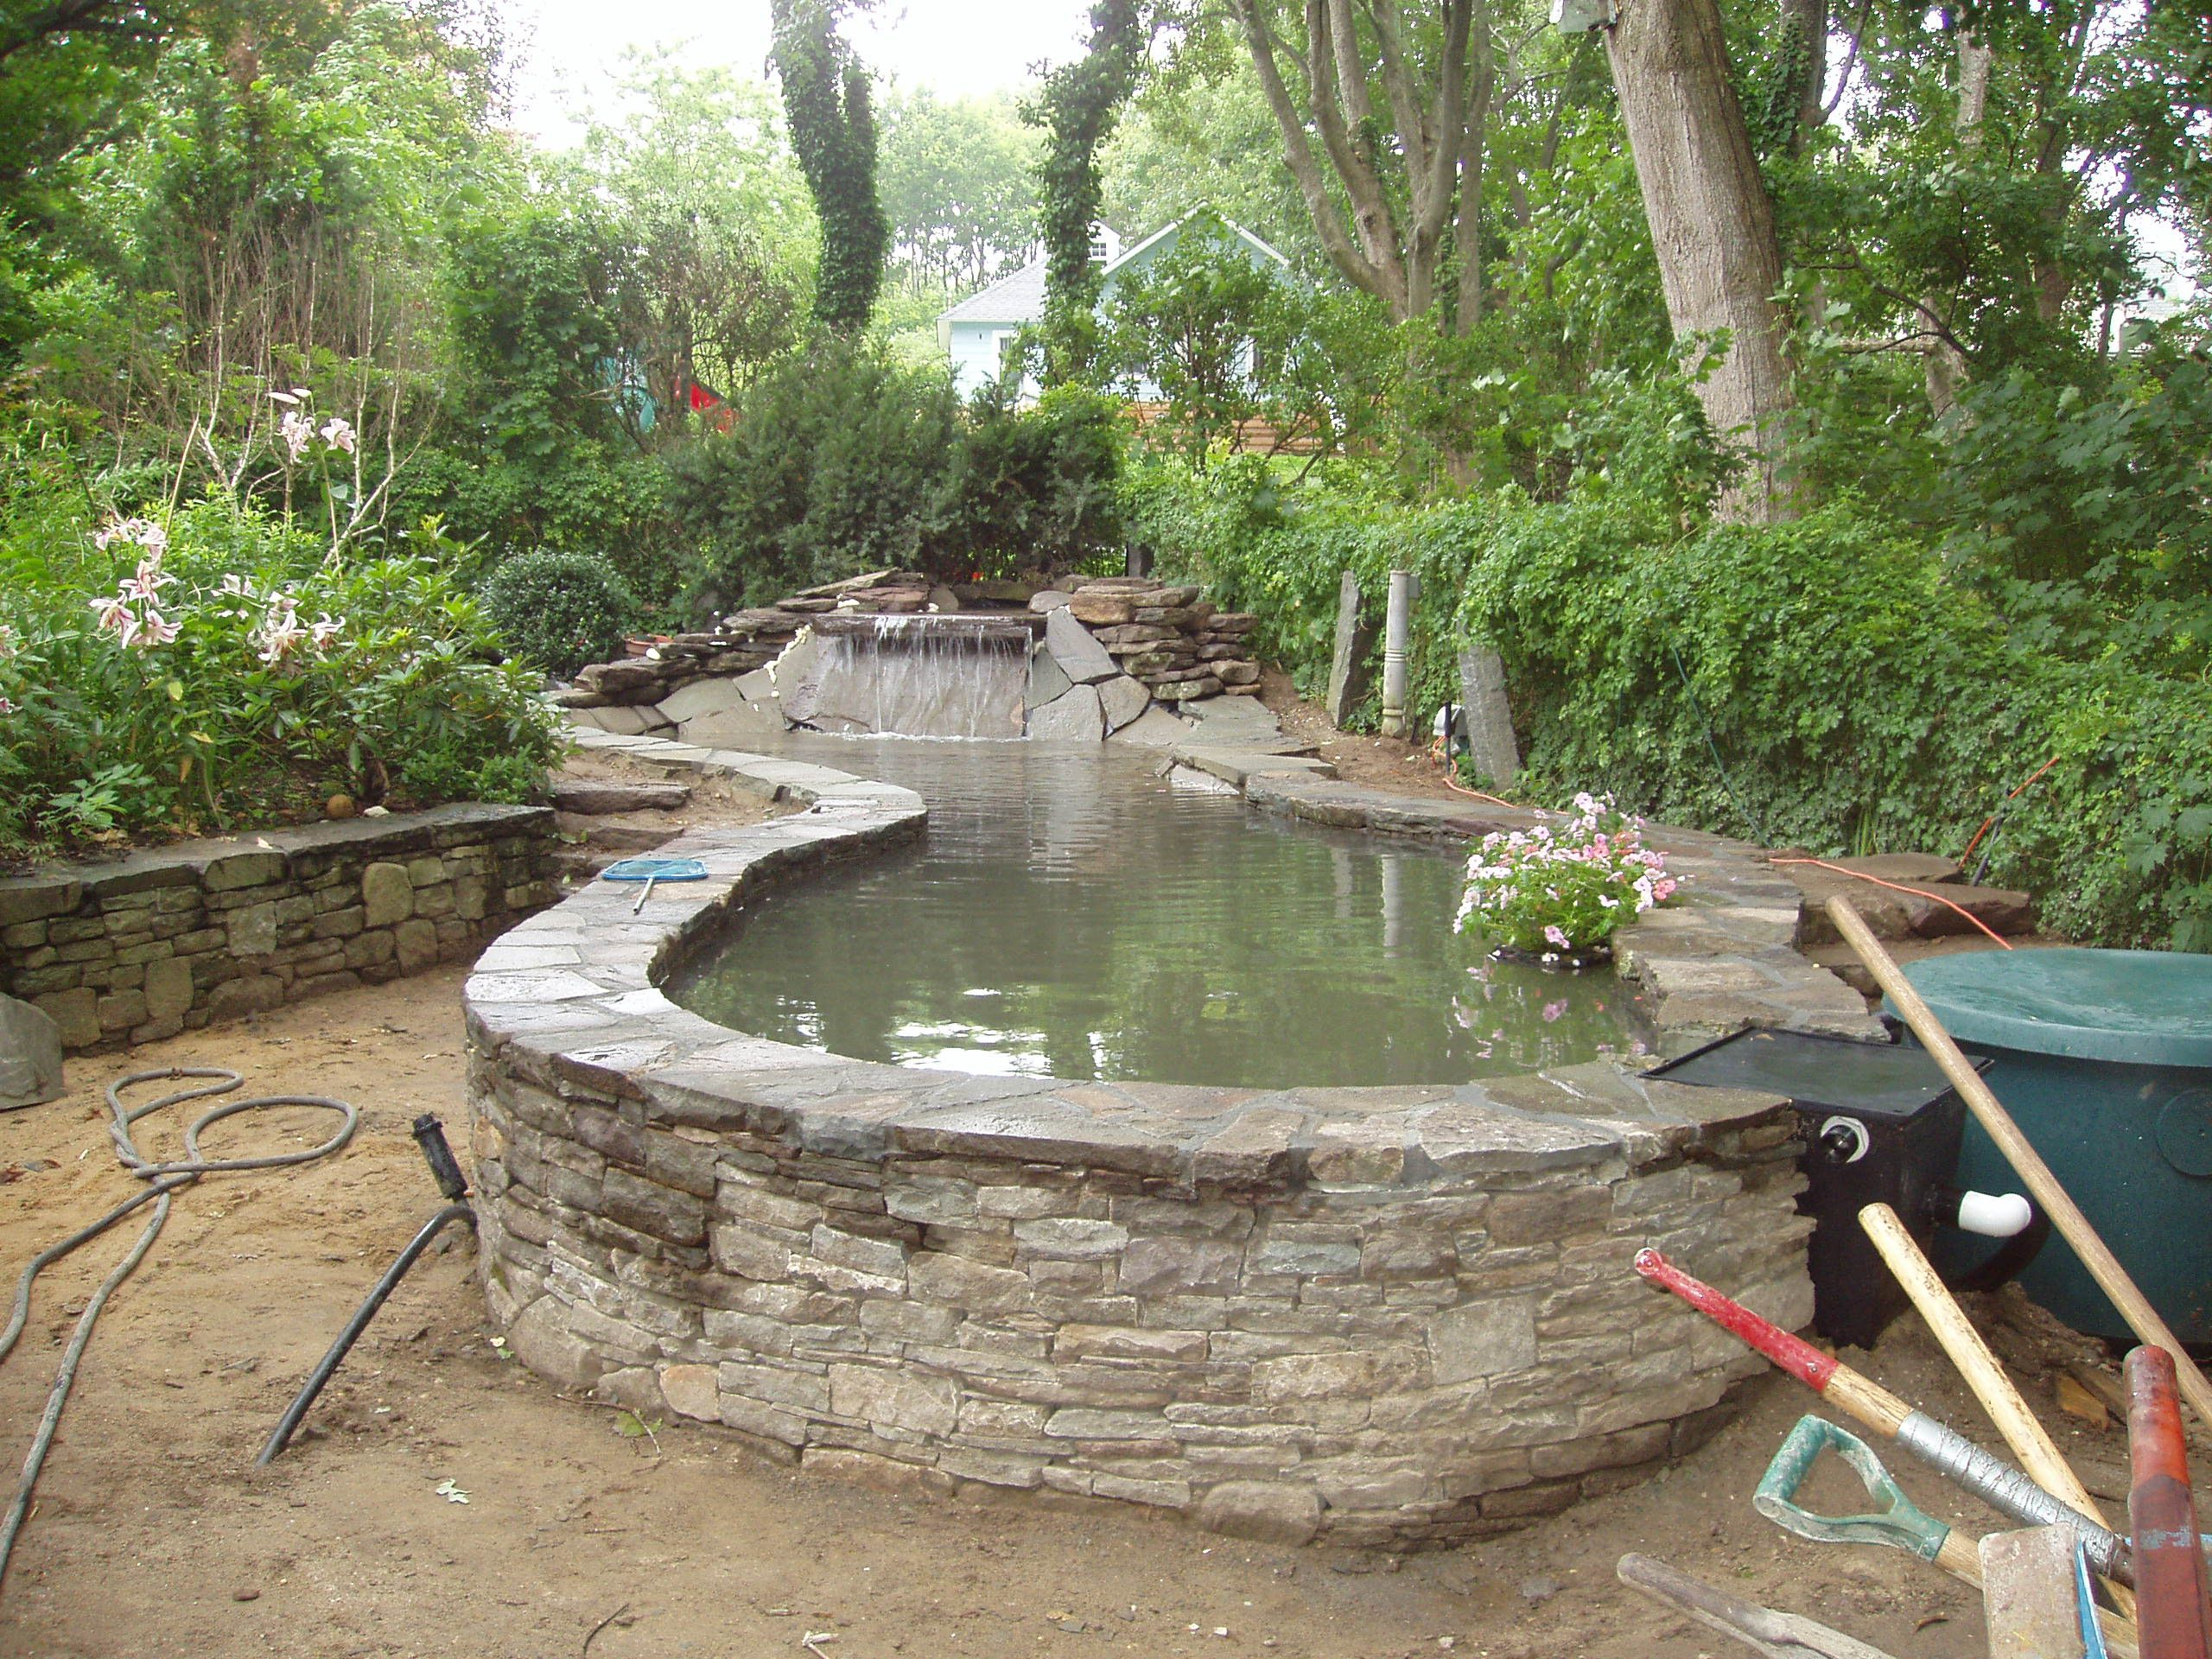 Fish pond pictures 95740 wallpapers things to make for Koi fish pond garden design ideas